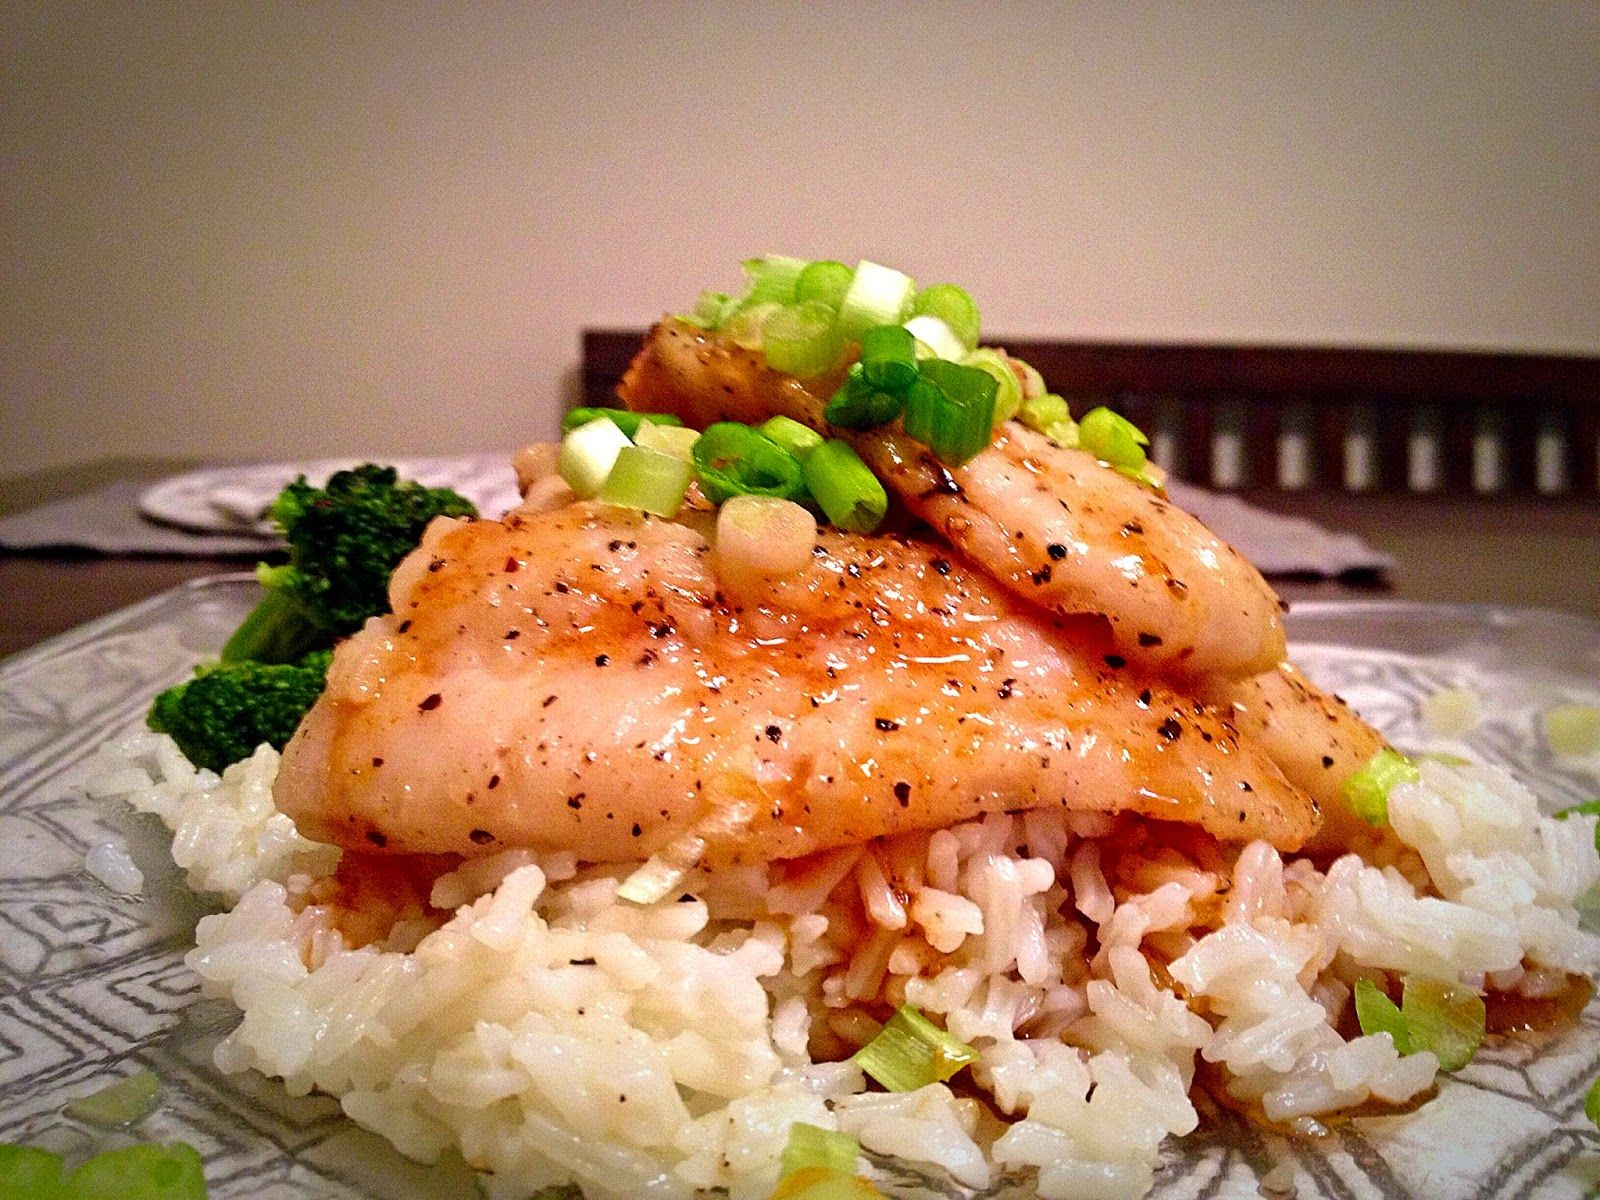 Asian glazed swai fish recipe glaze and fish for Fish dishes for dinner